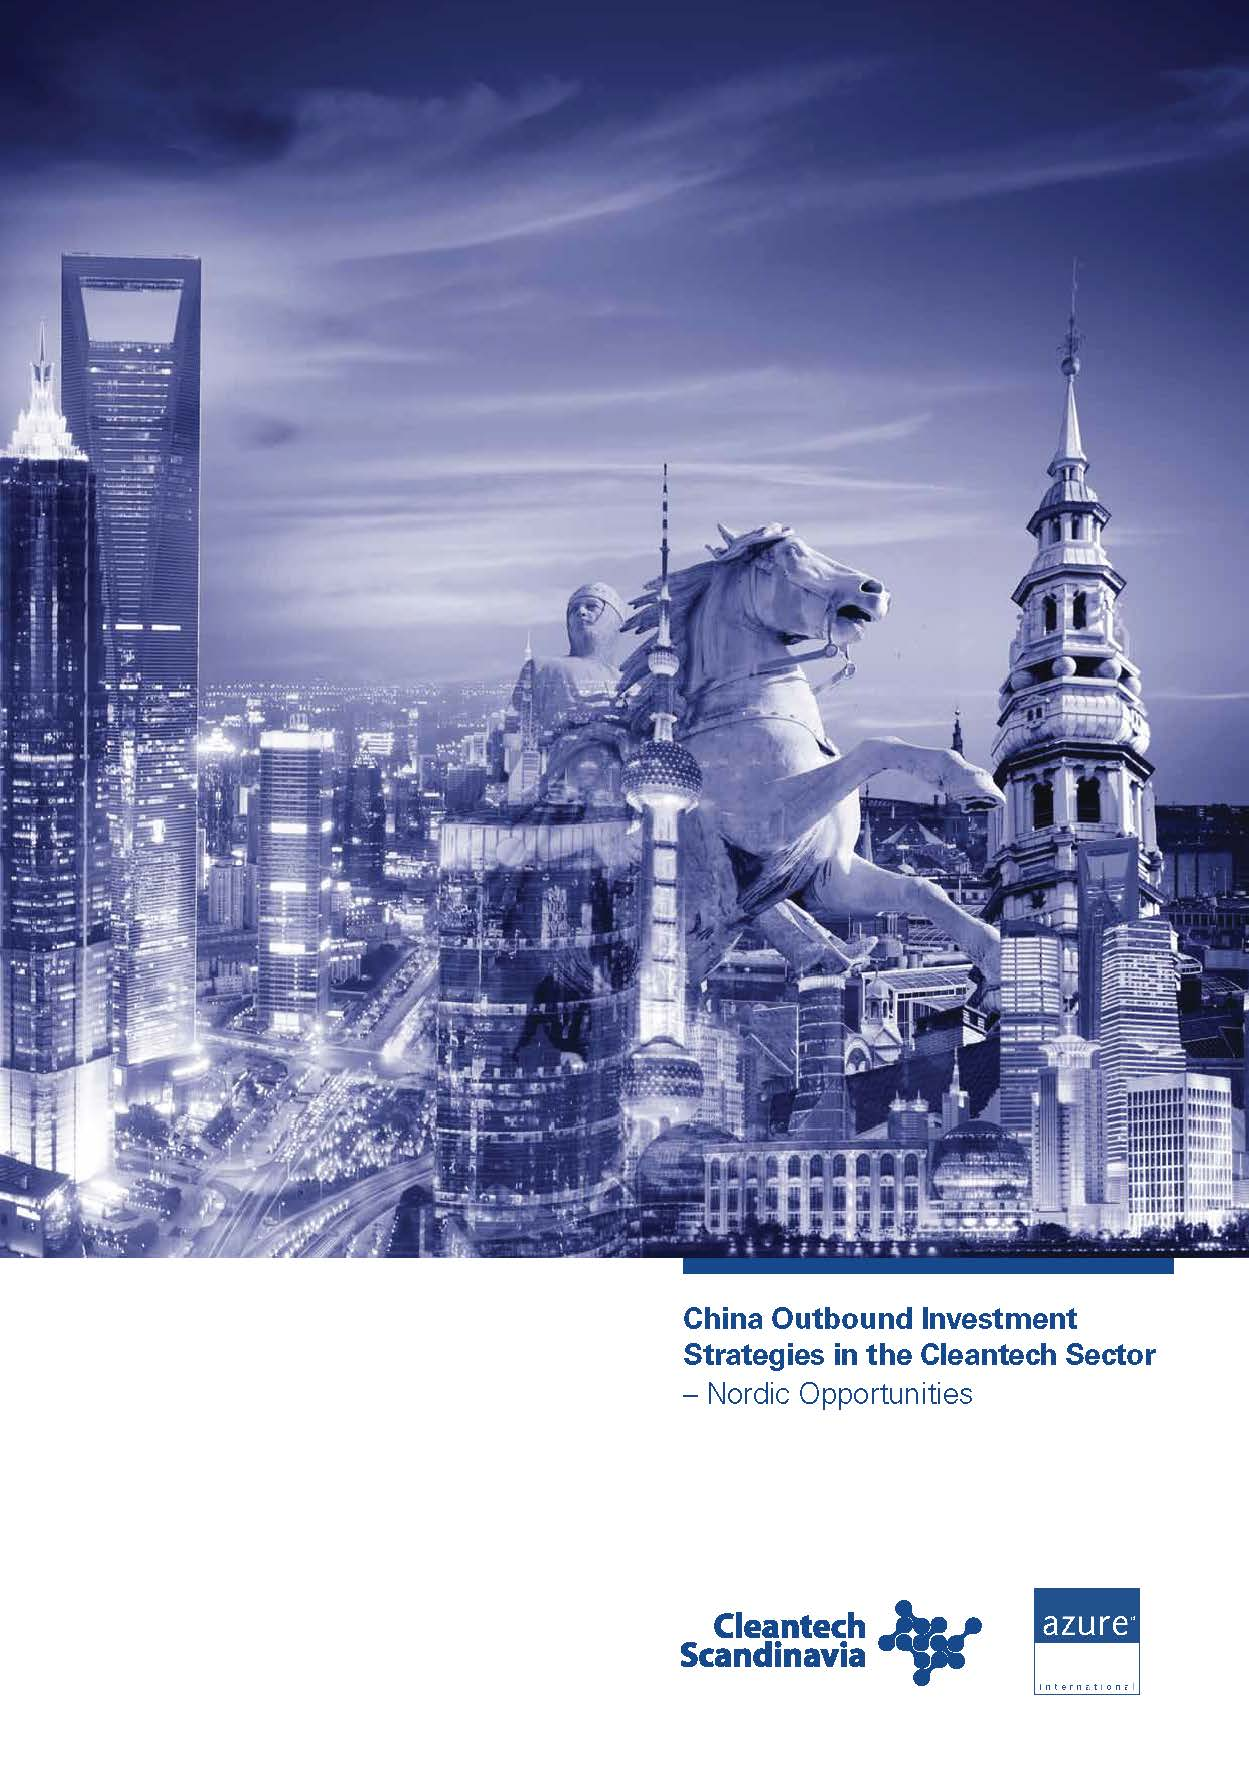 China Outbound Investment Strategies